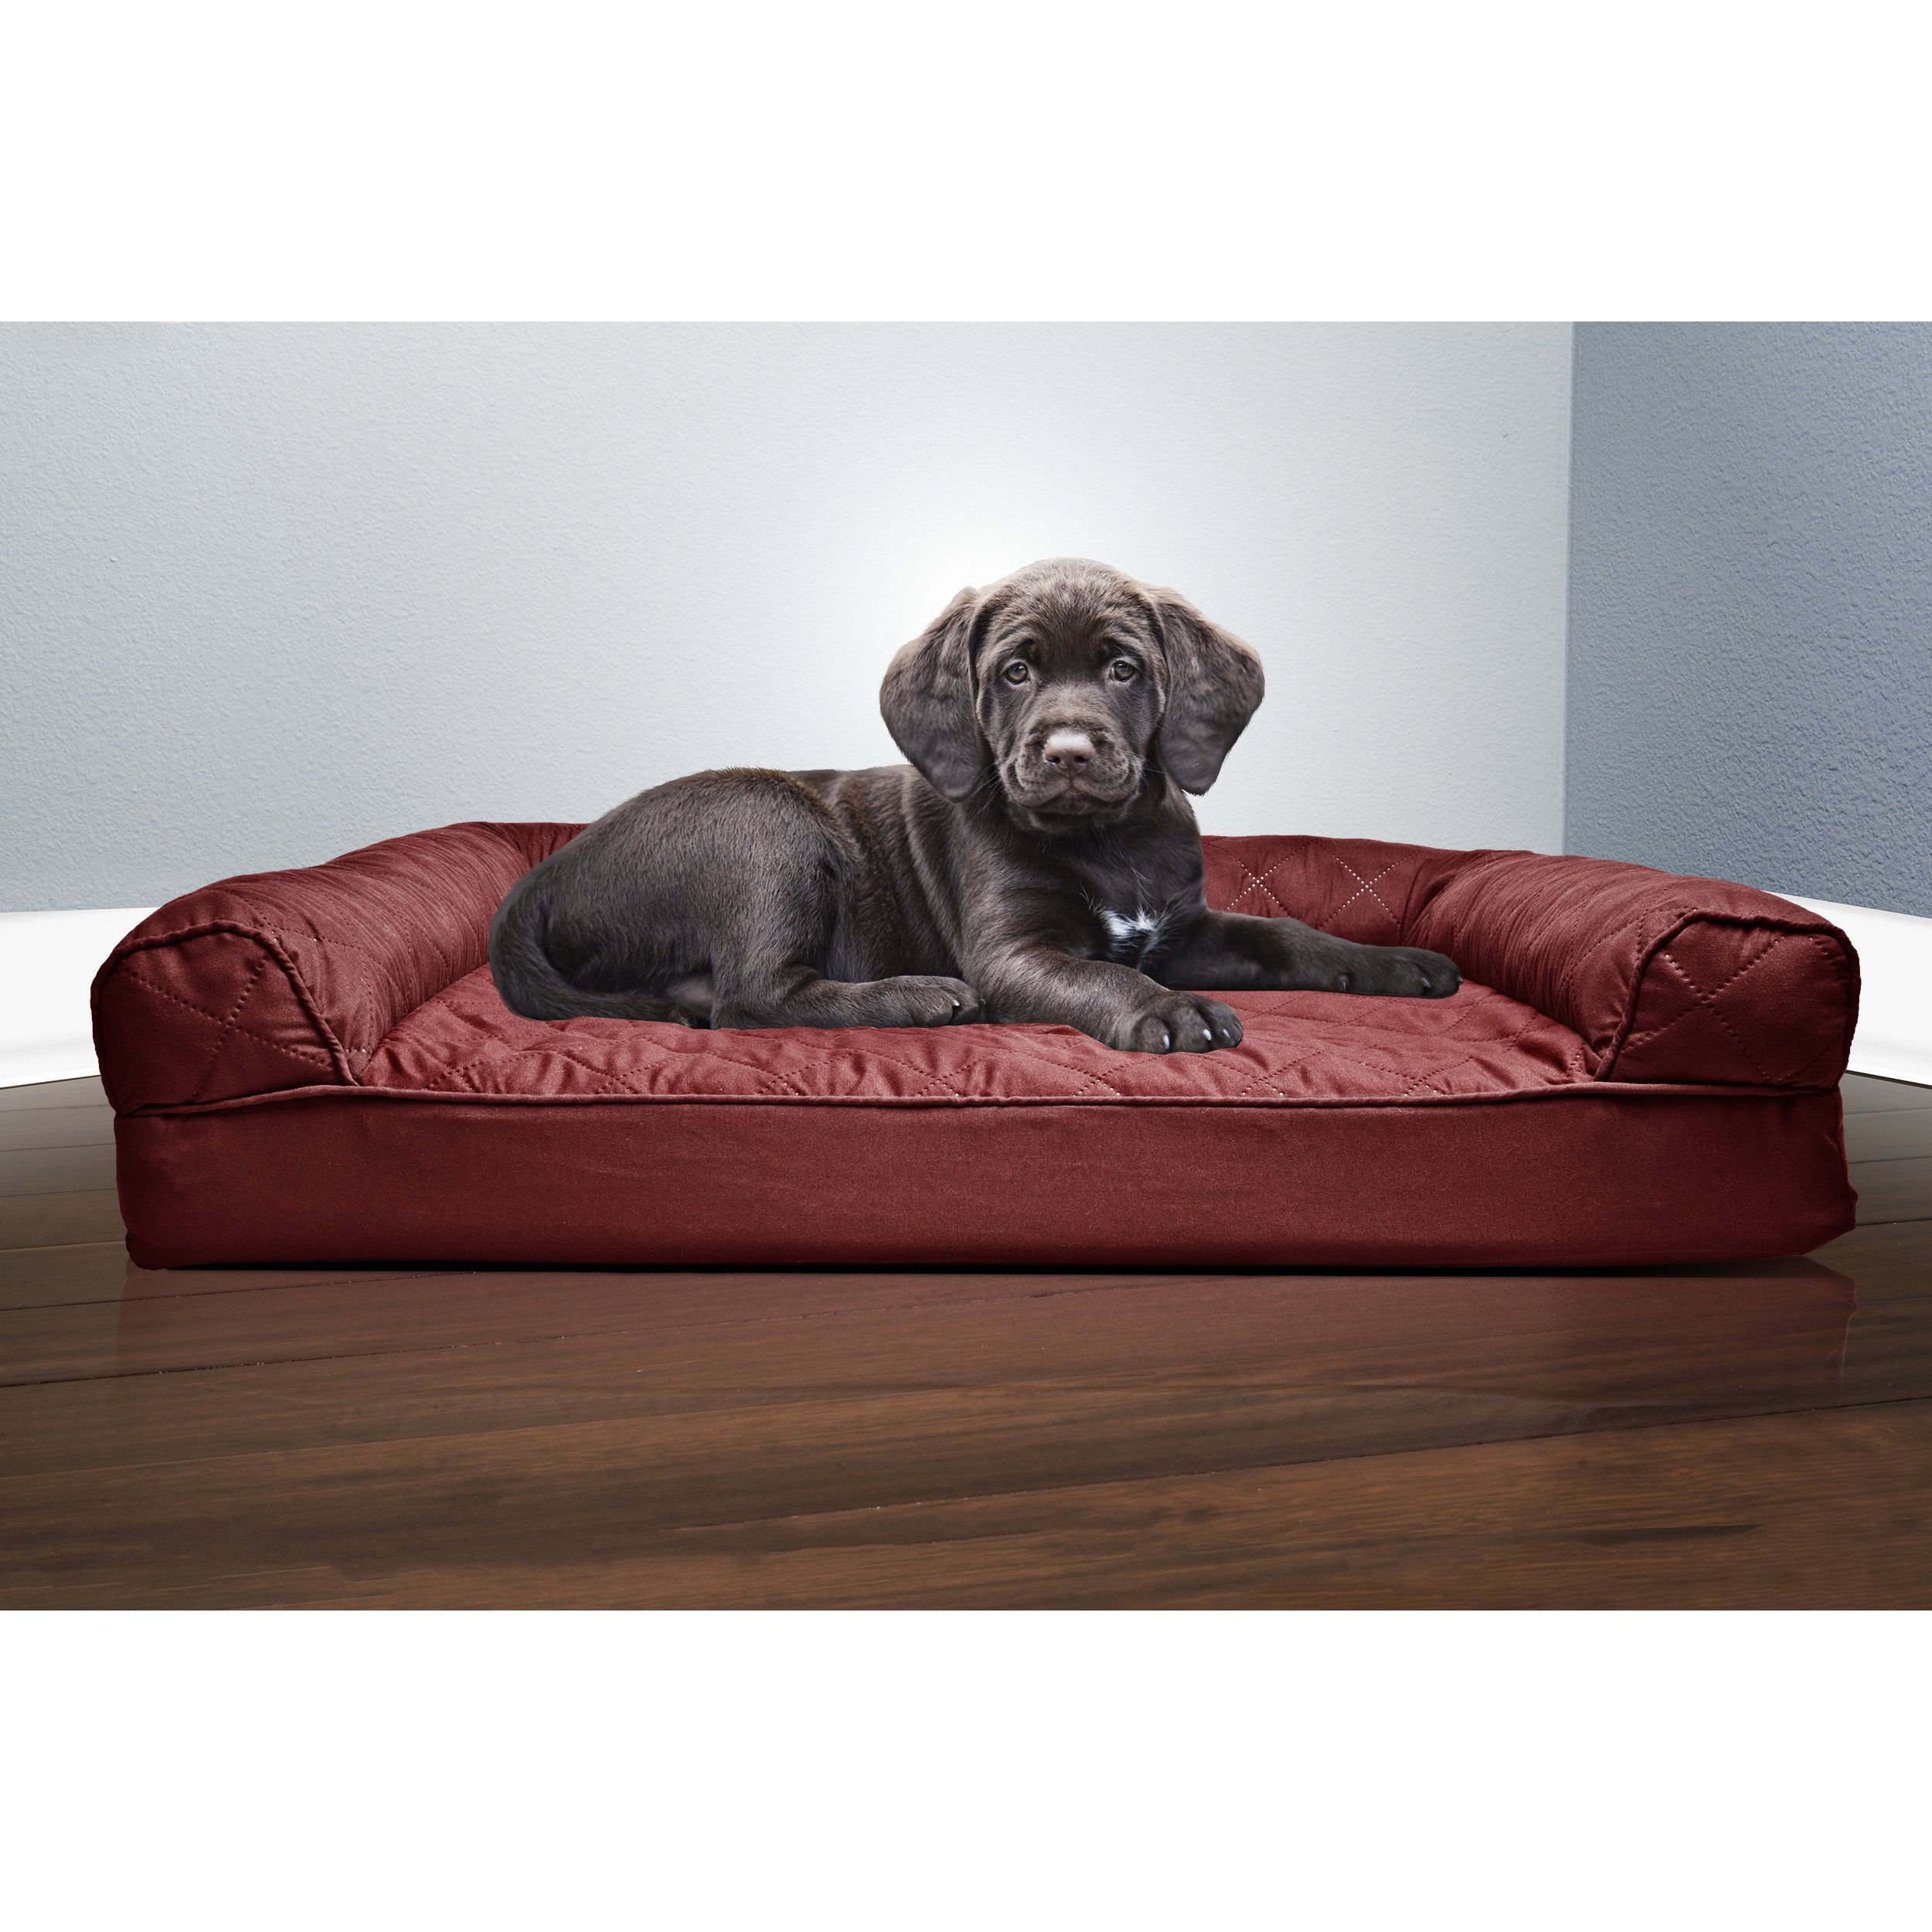 Terrific Furhaven Pet Bed Quilted Orthopedic Sofa Dog Bed Small Ibusinesslaw Wood Chair Design Ideas Ibusinesslaworg